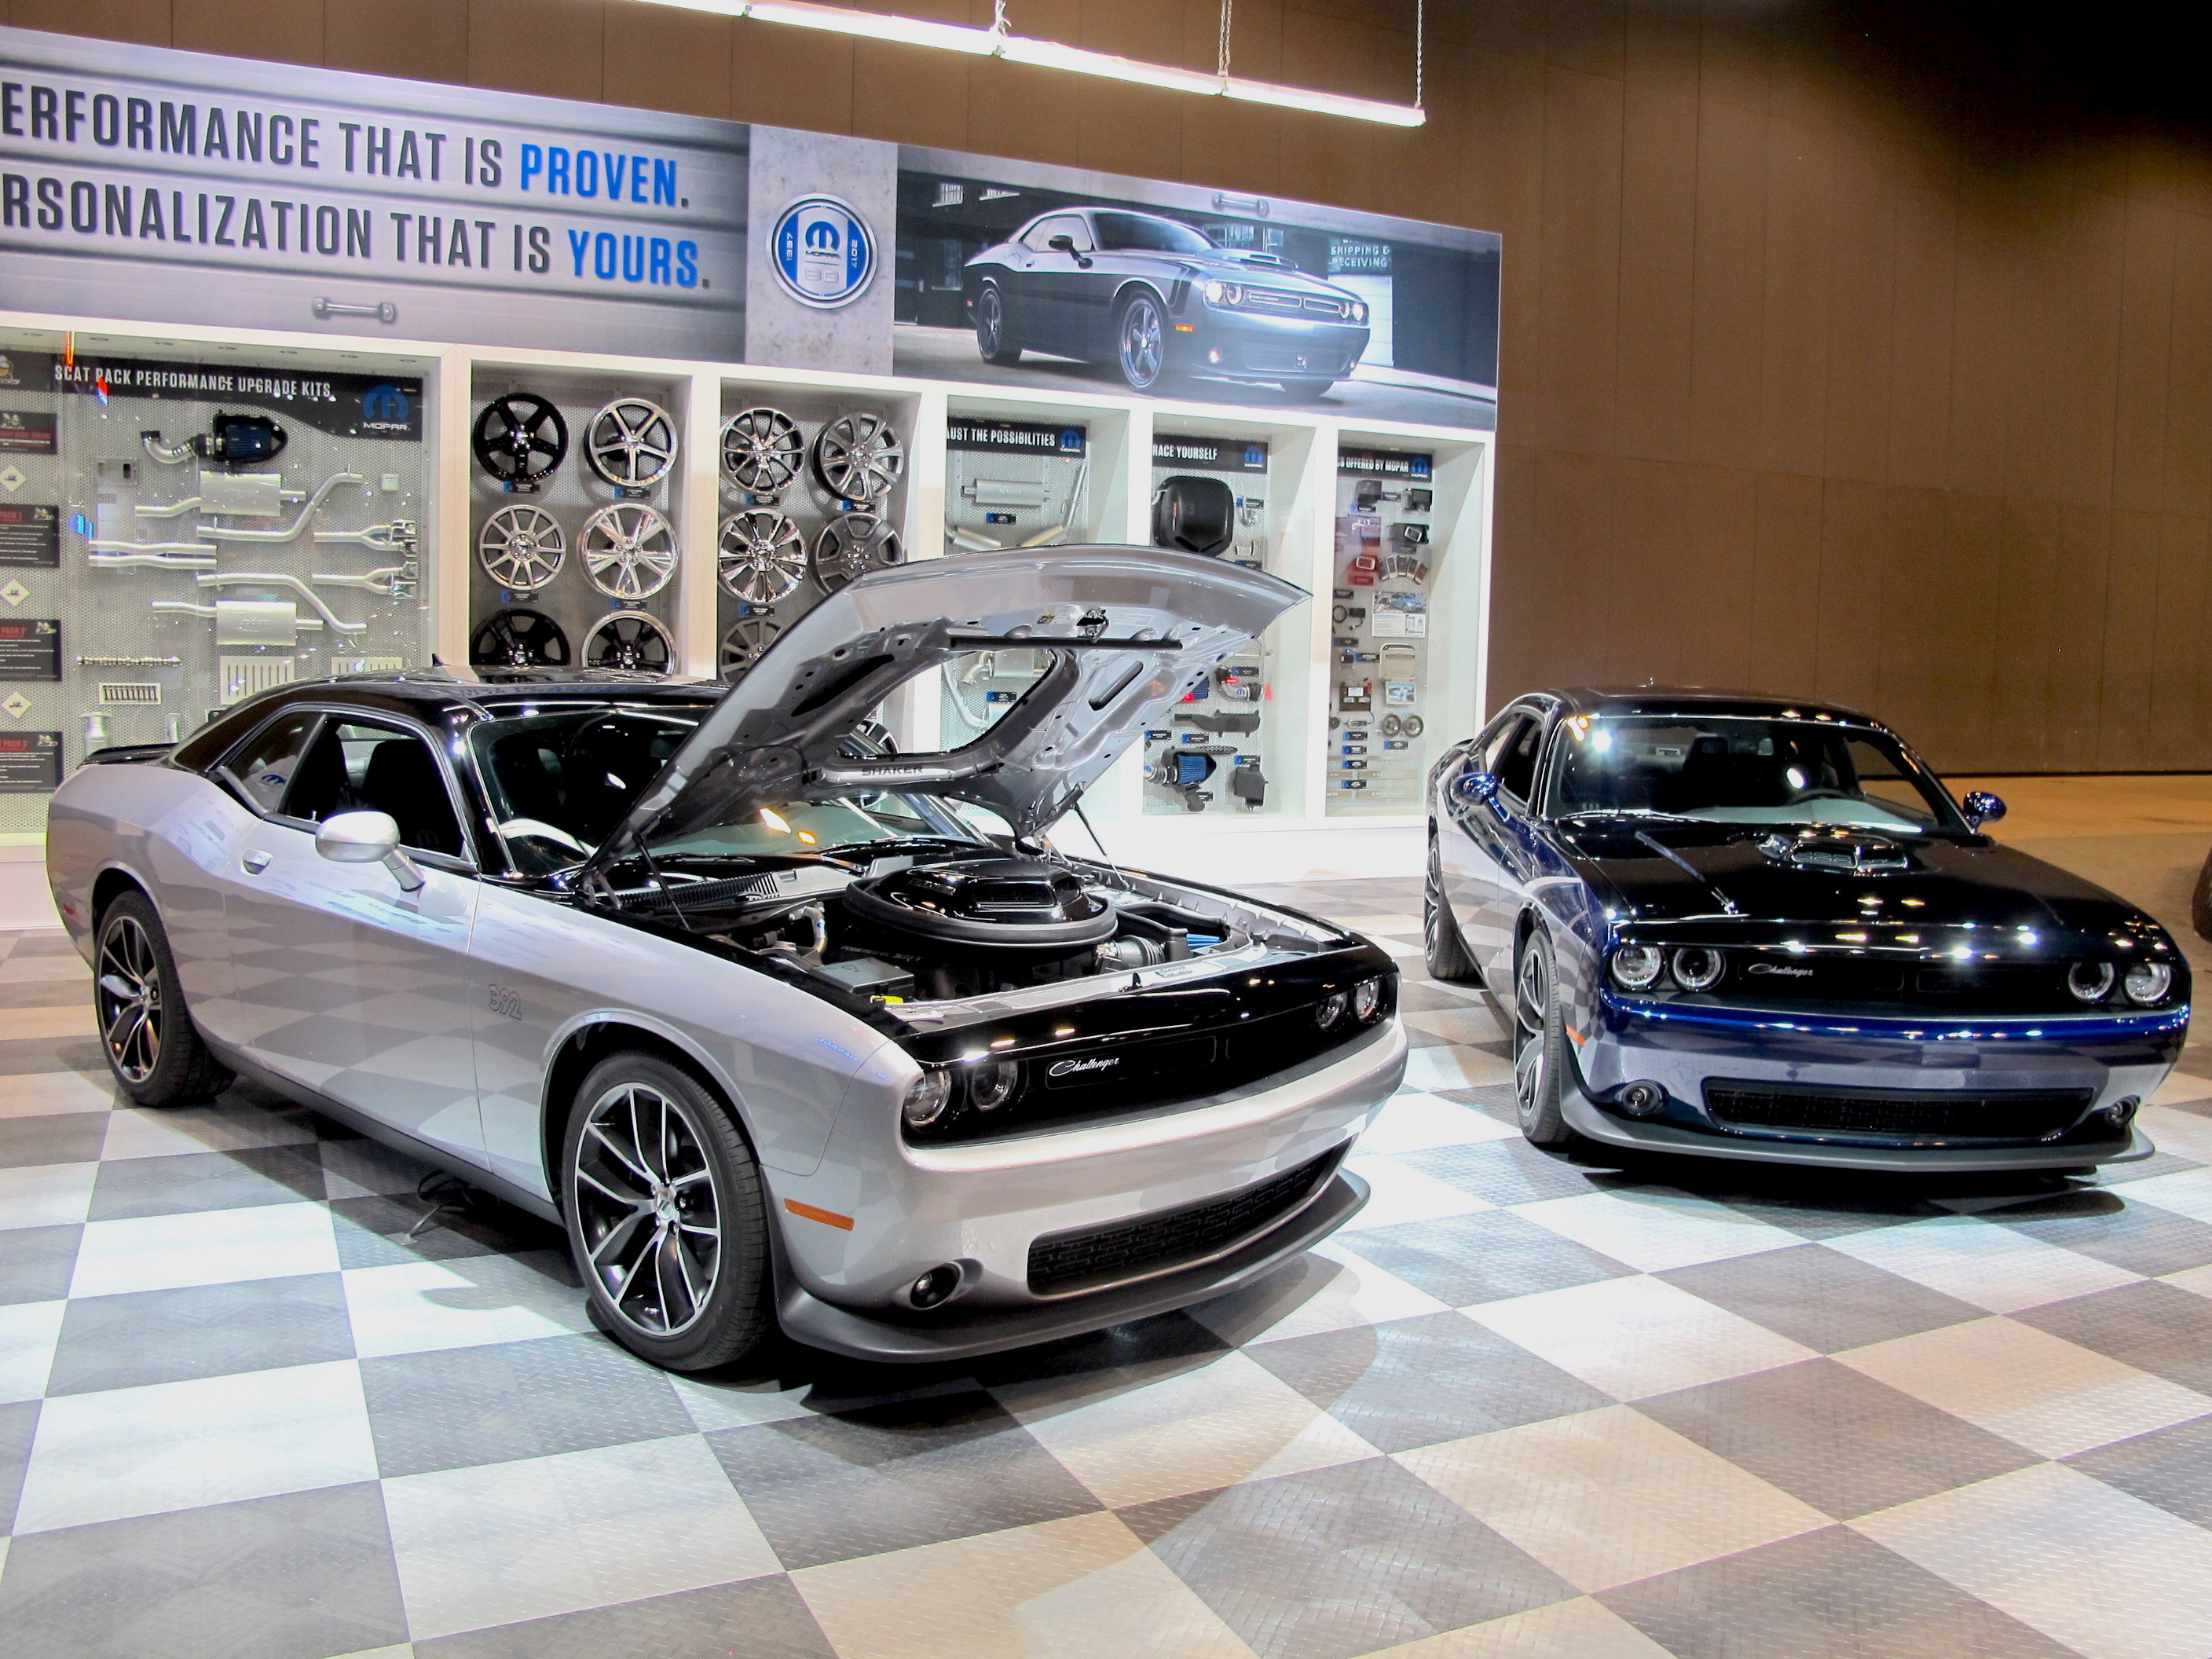 Mopar 17 Dodge Challenger Celebrates 80 Years Of Mopar In